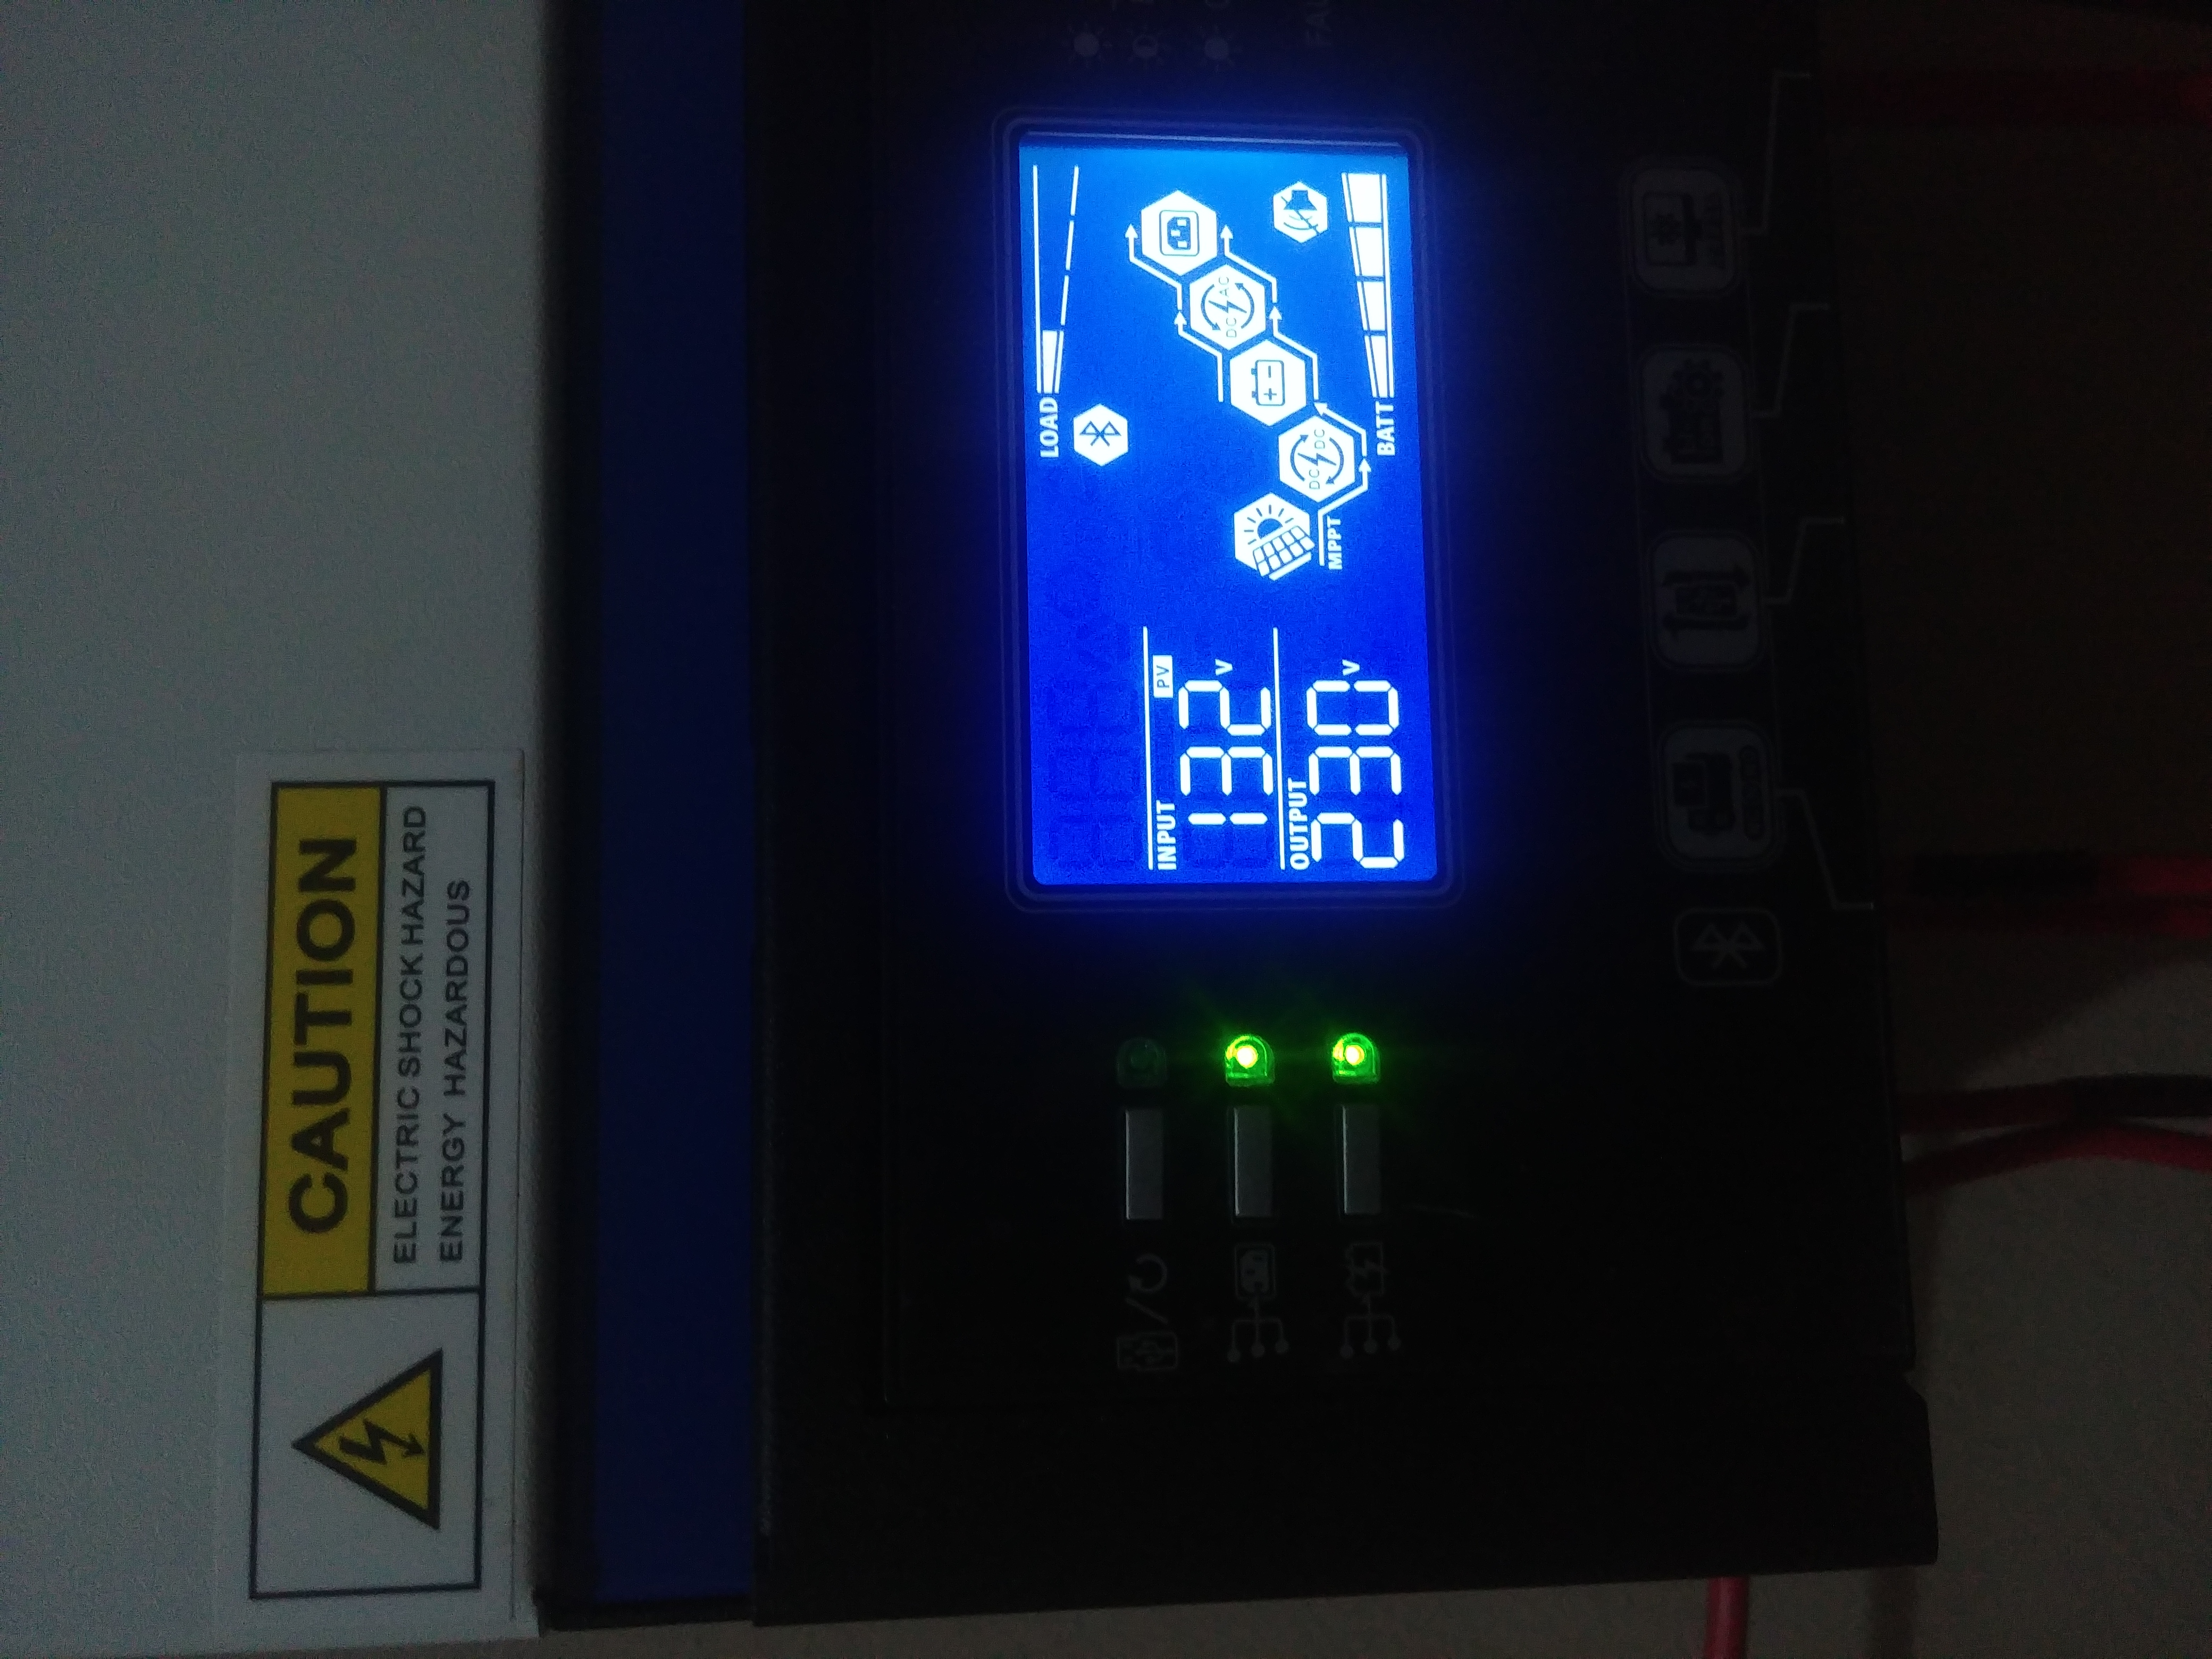 Mppt at lower voltage